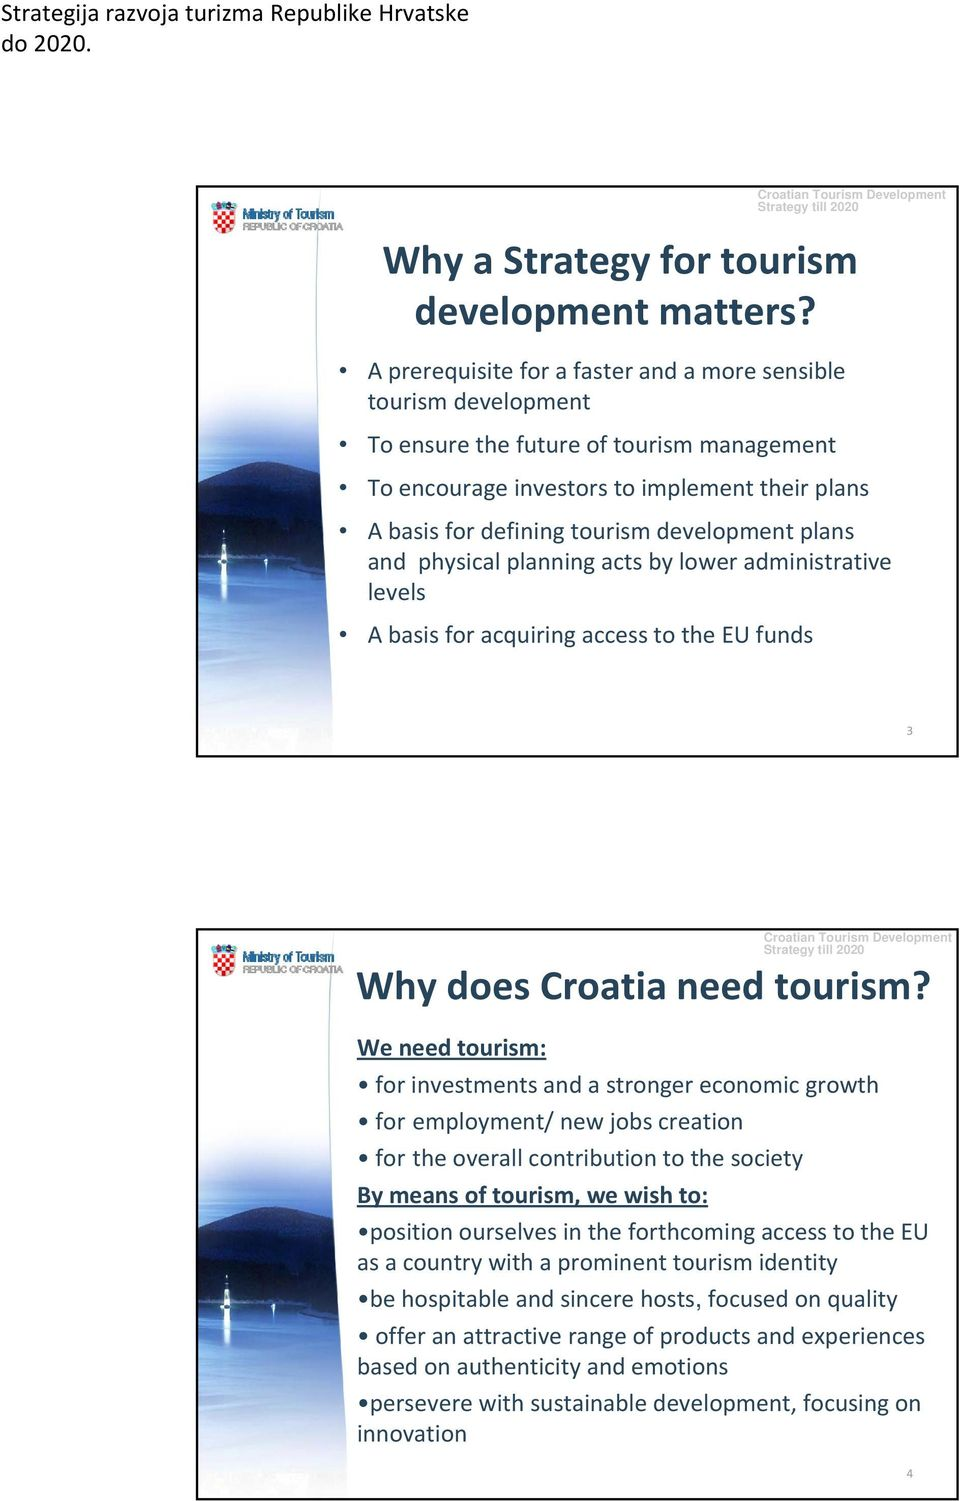 plans and physical planning acts by lower administrative levels A basis for acquiring access to the EU funds 3 We need tourism: Why does Croatia need tourism?